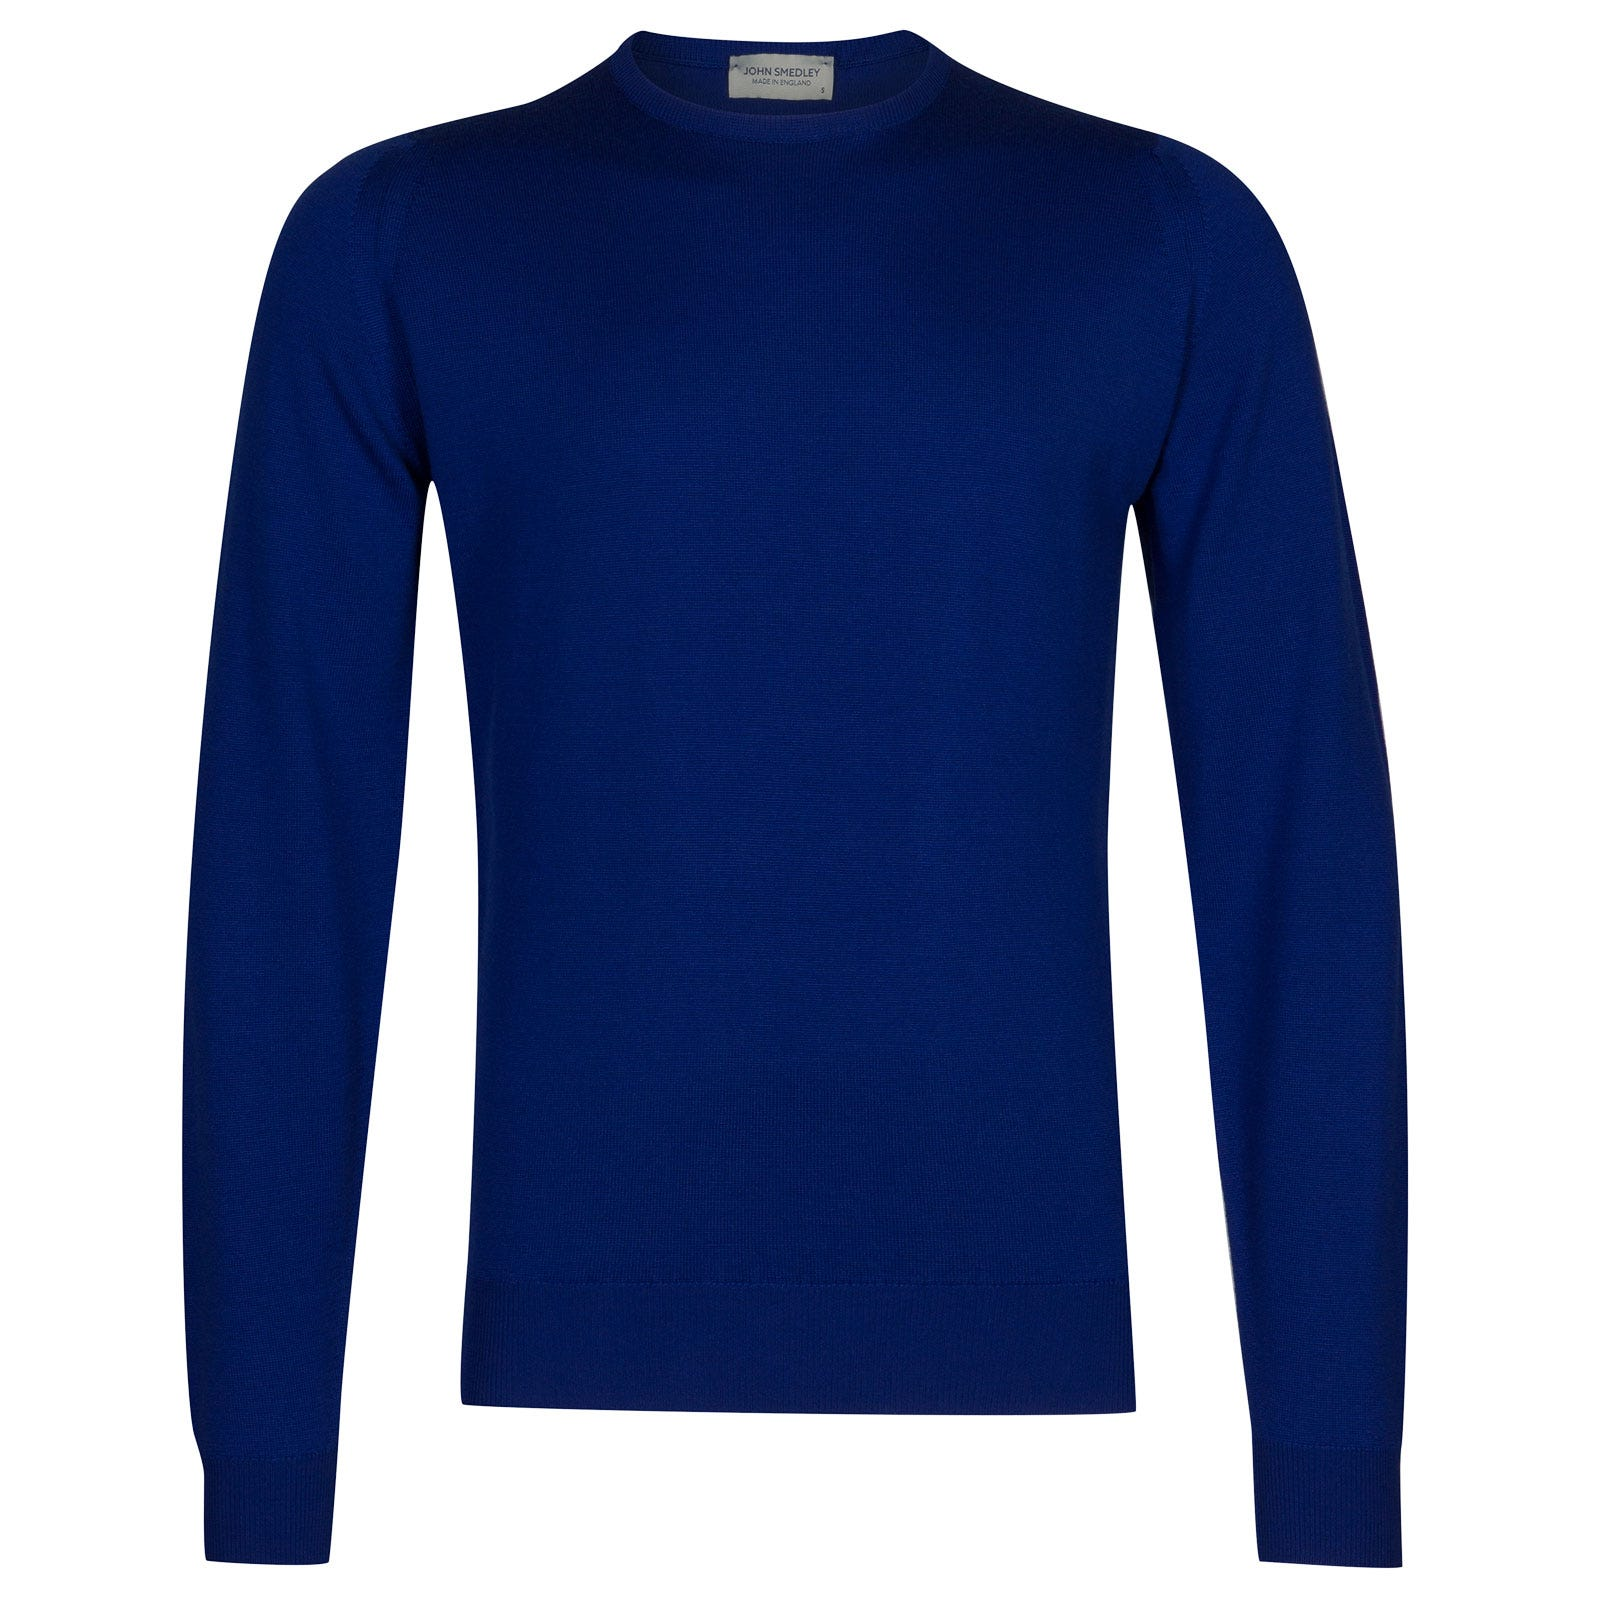 John Smedley farhill Merino Wool Pullover in Coniston Blue-M